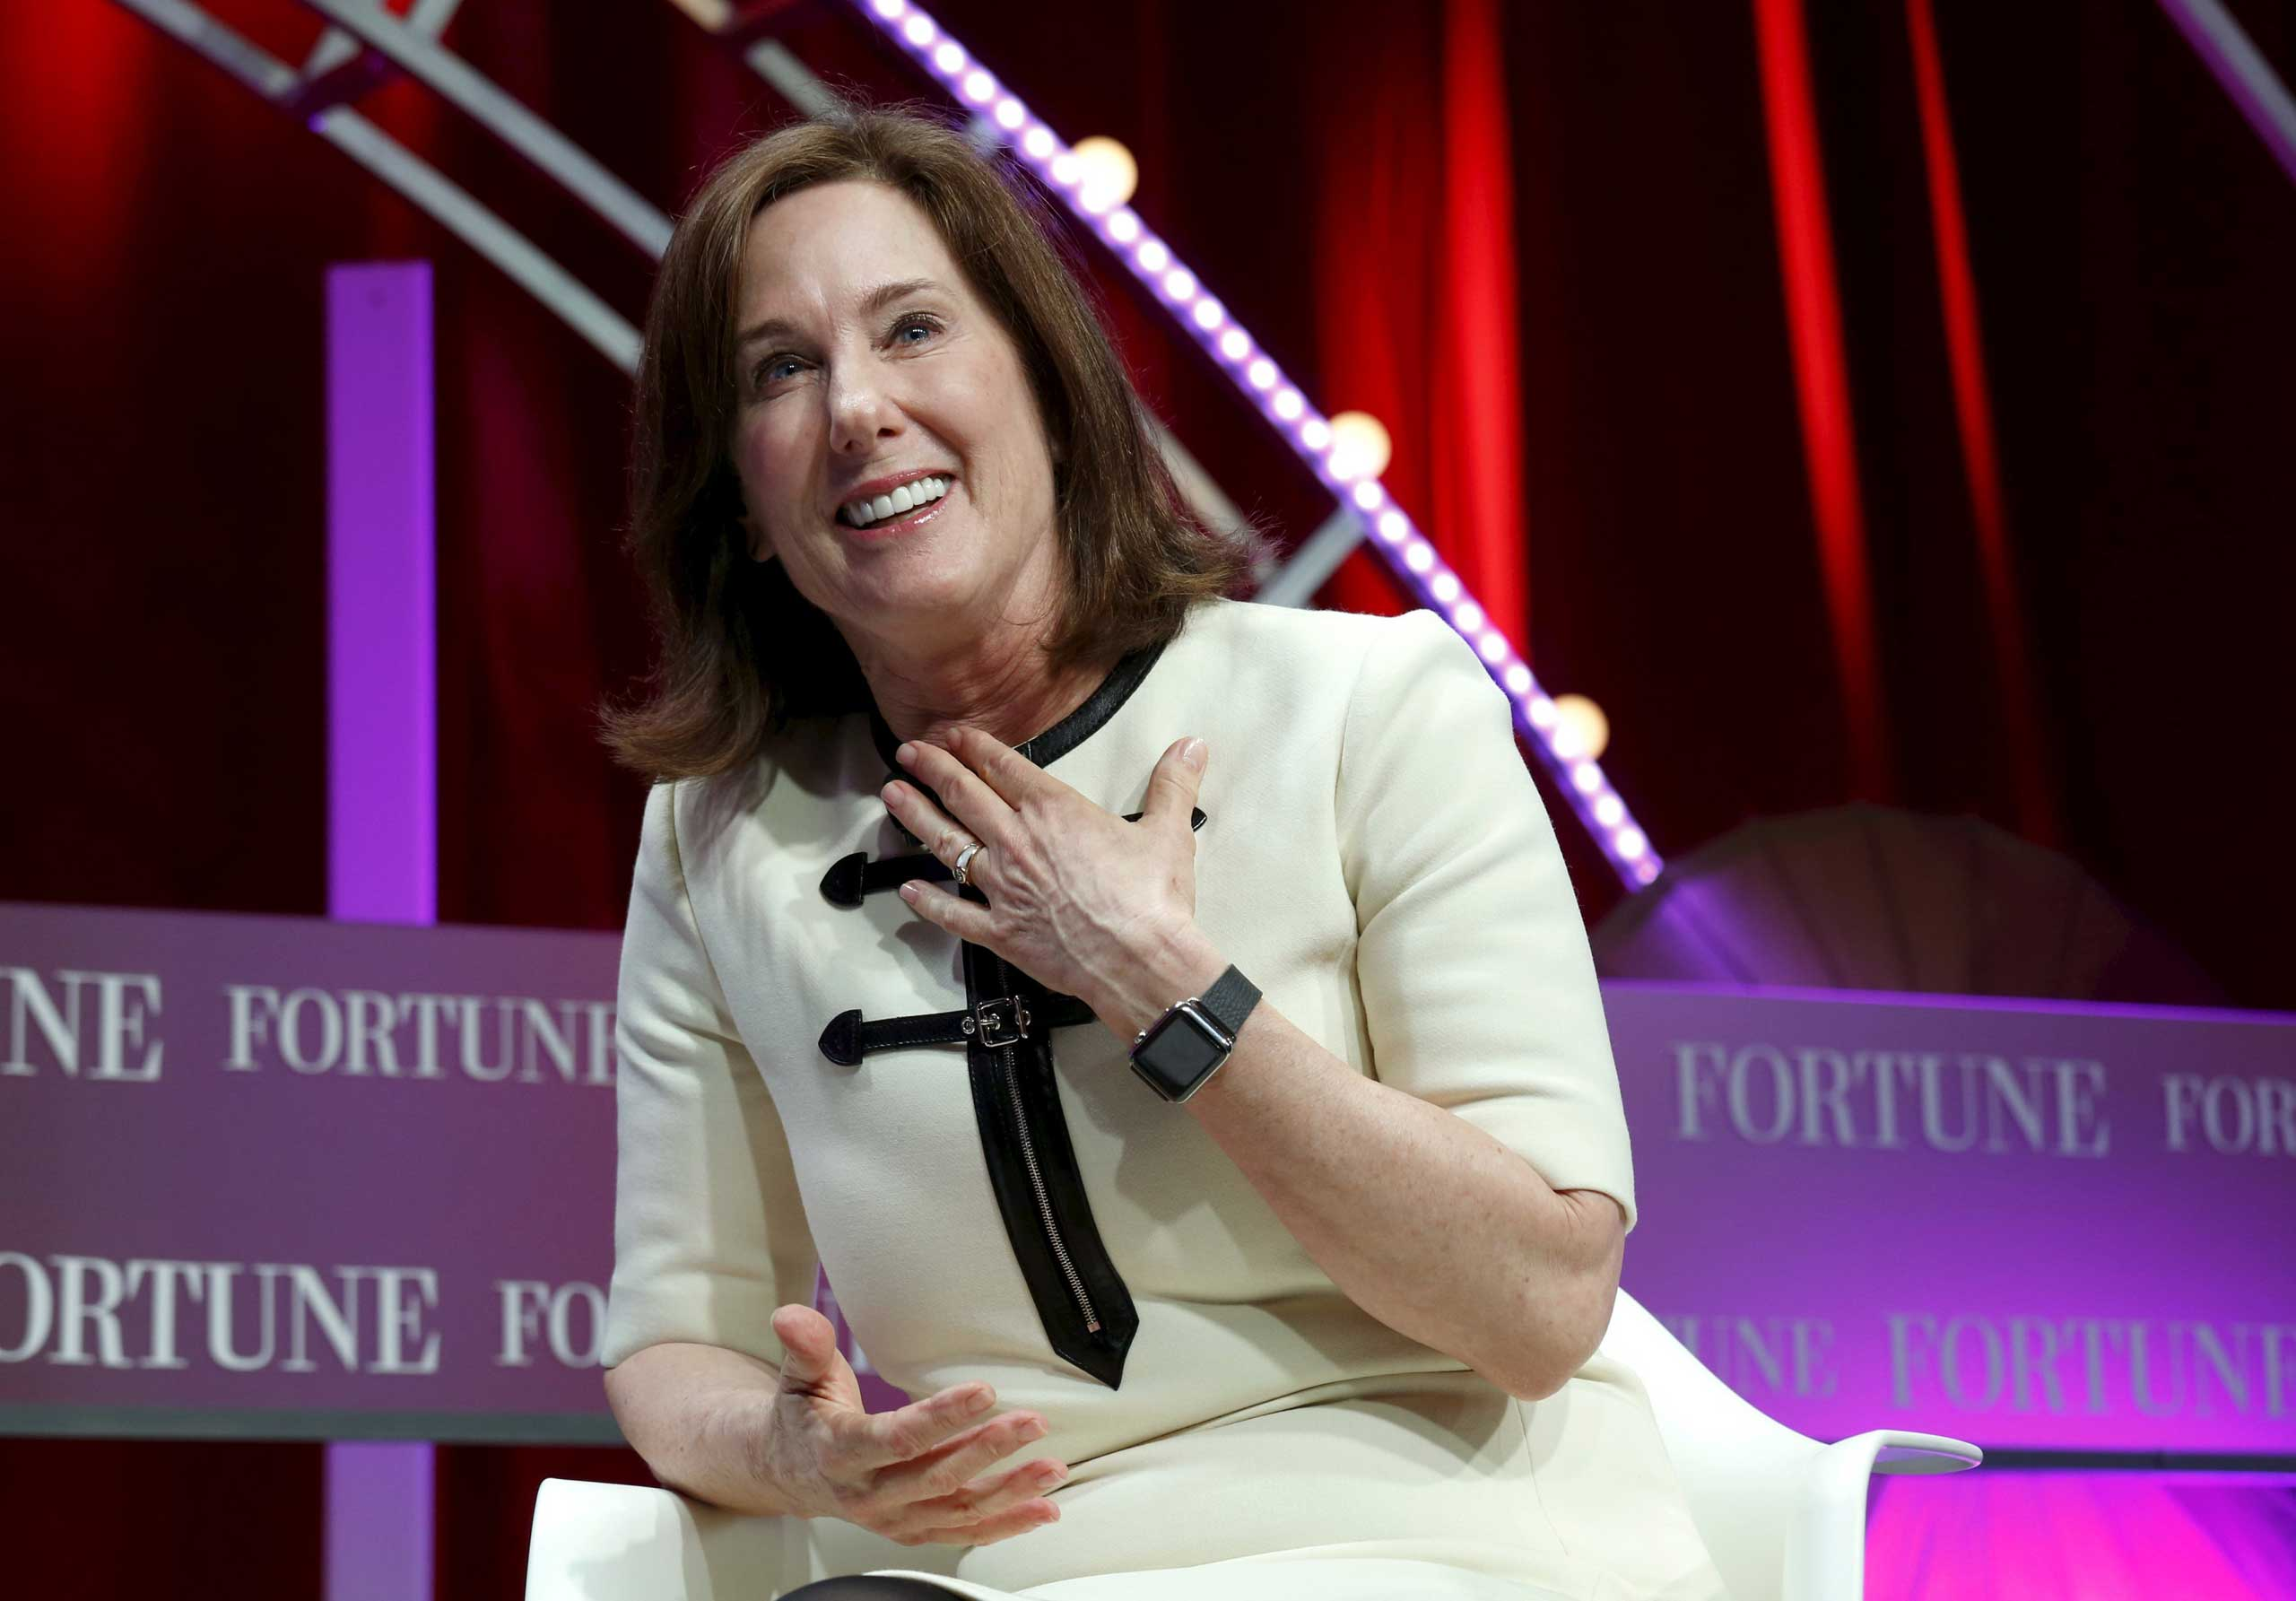 Lucasfilm's President Kathleen Kennedy speaks at Fortune's Most Powerful Women Summit in Washington Oct. 13, 2015.